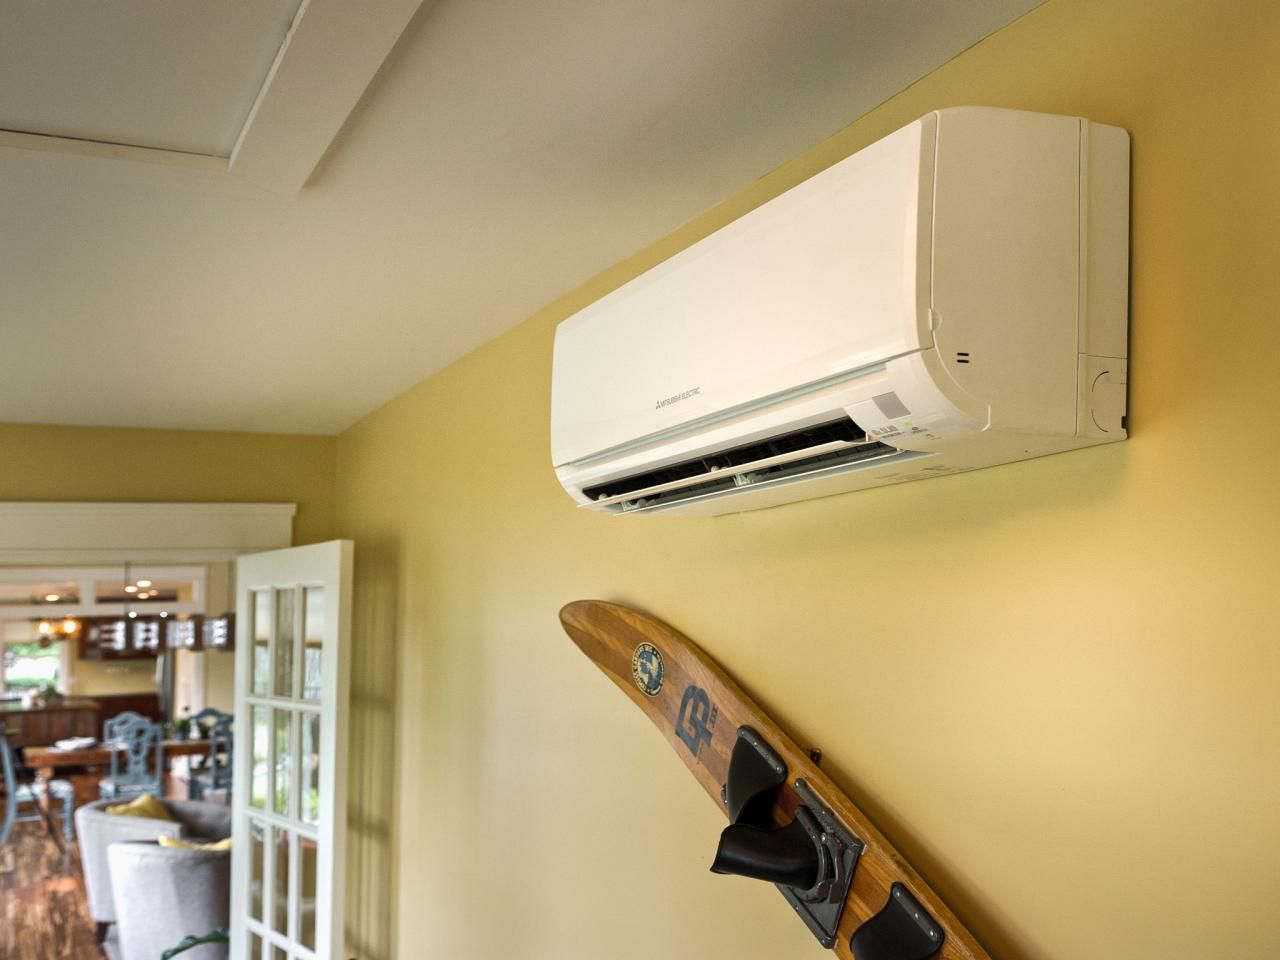 The Best Ductless Air Conditioning And Heating And Description In 2020 Ductless Heating And Cooling Heating And Cooling Units Ductless Air Conditioner